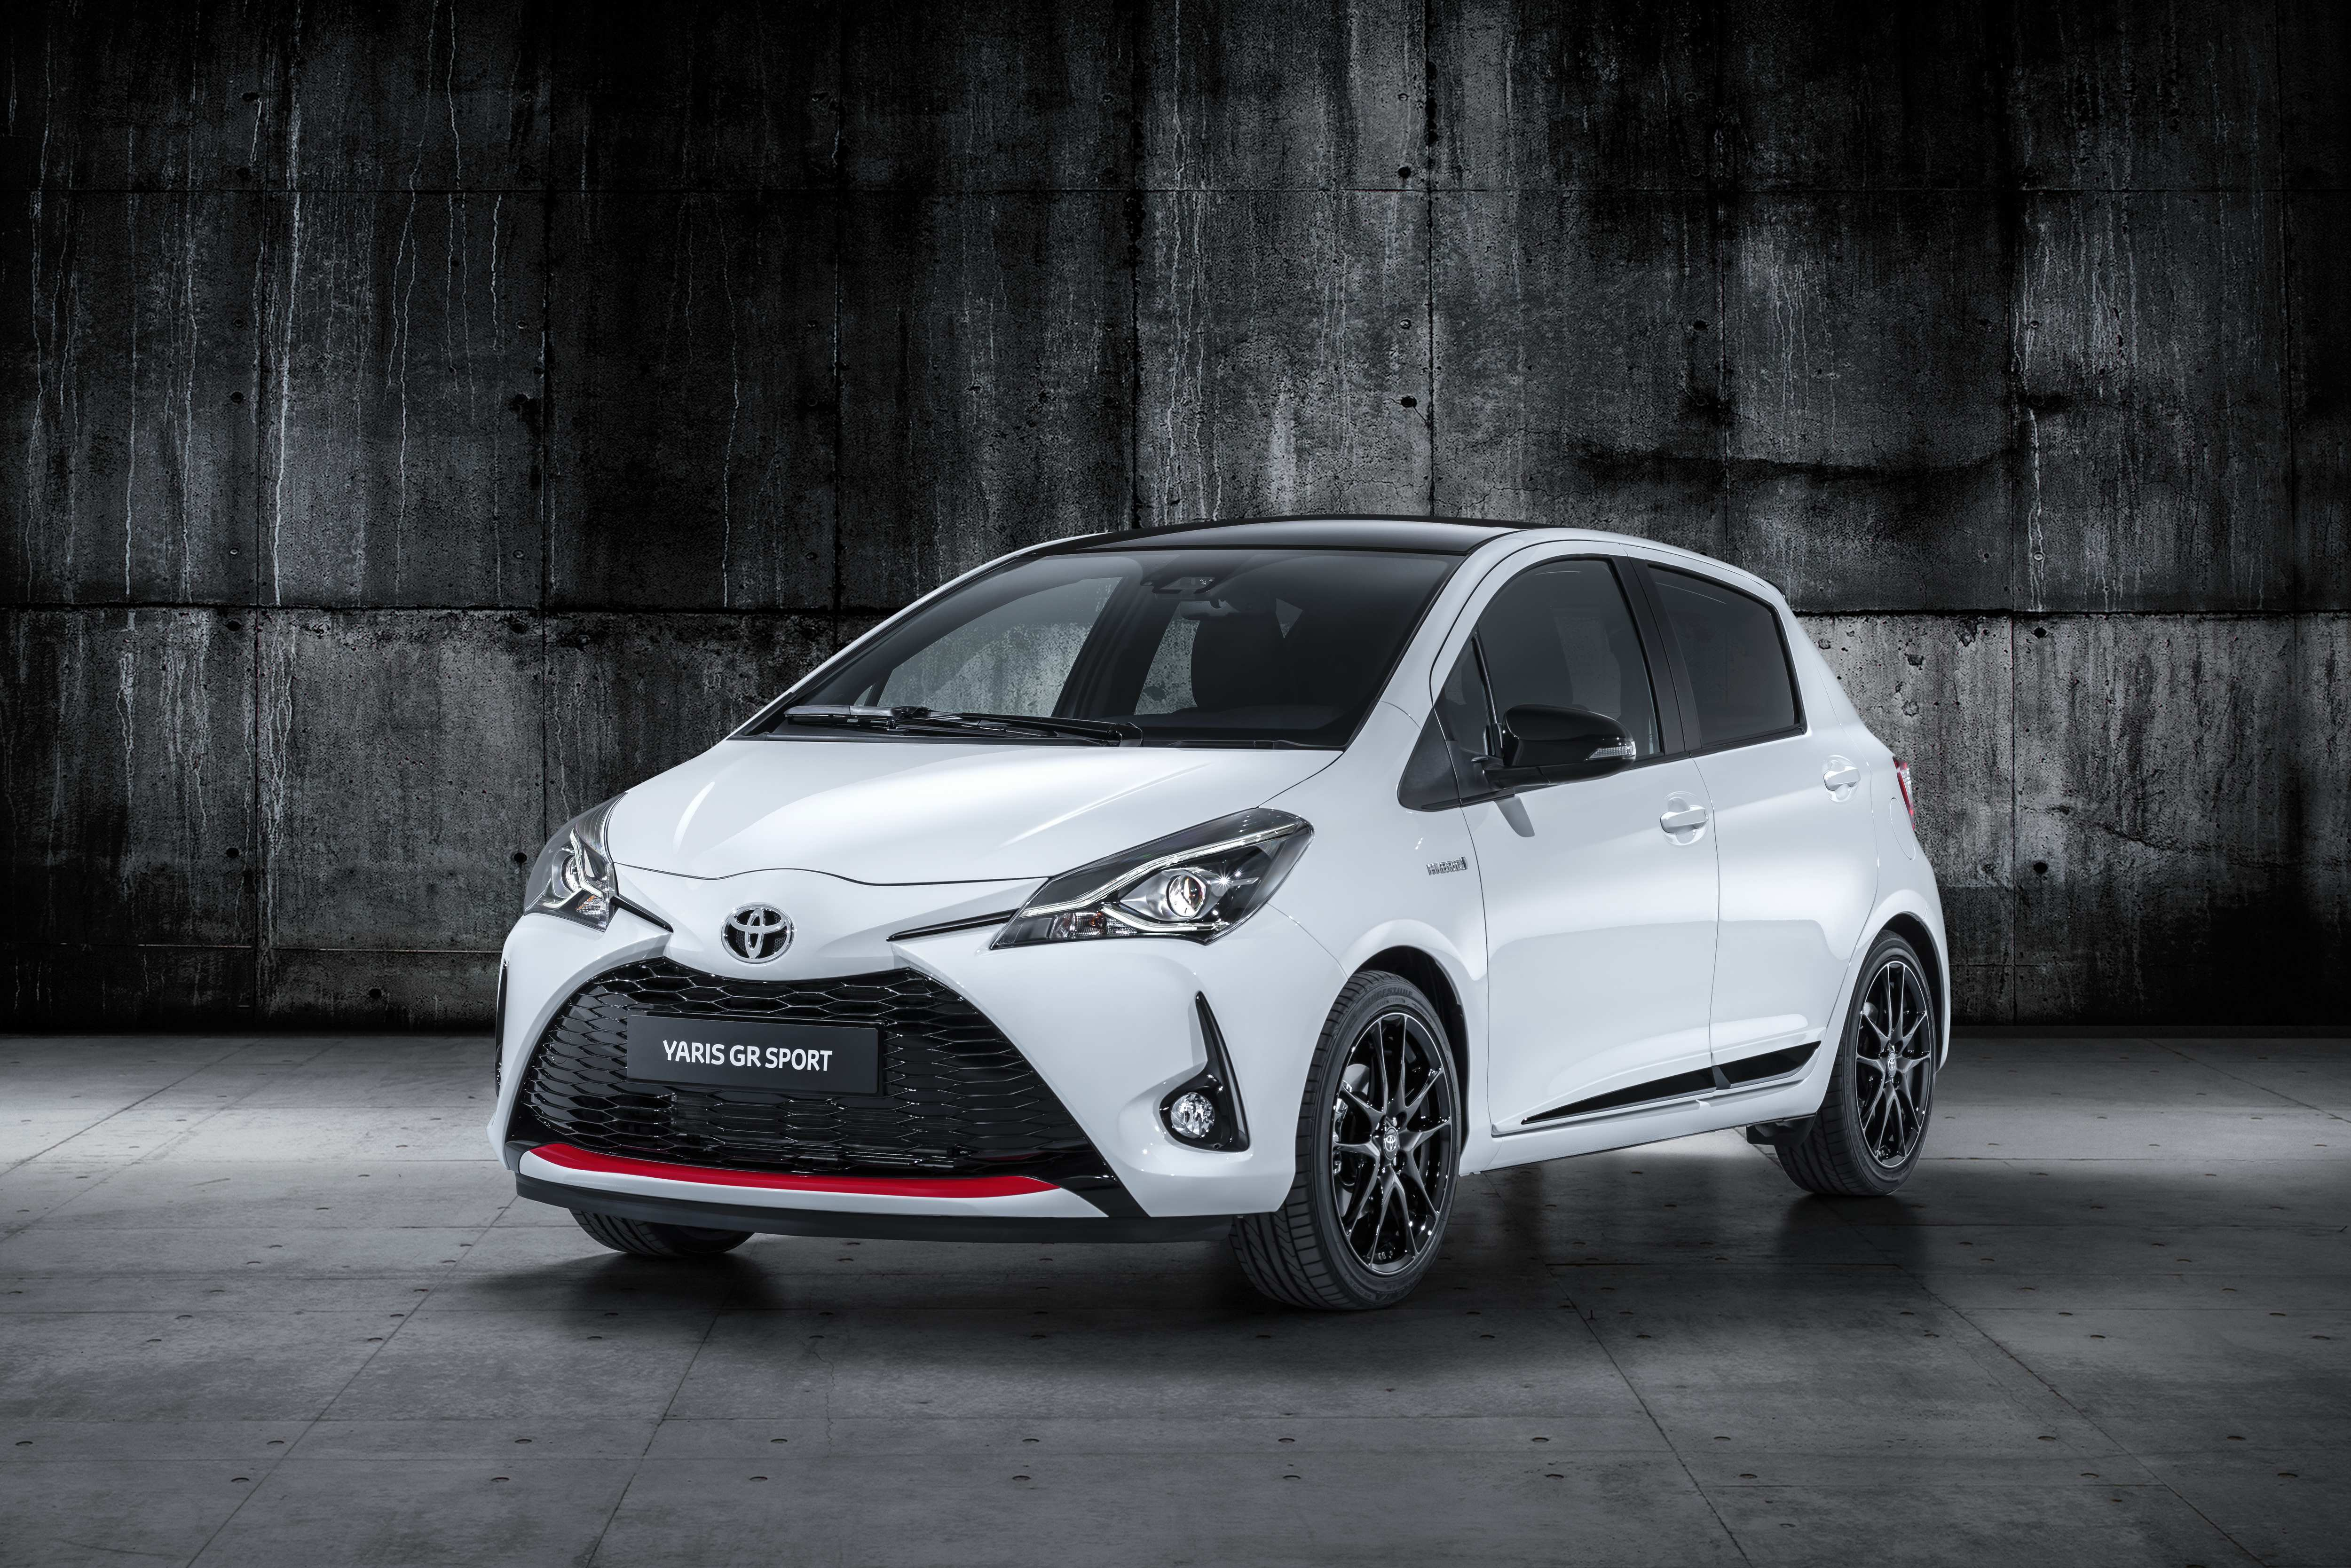 47 All New Best Yaris Toyota 2019 Precio Price And Review Prices with Best Yaris Toyota 2019 Precio Price And Review